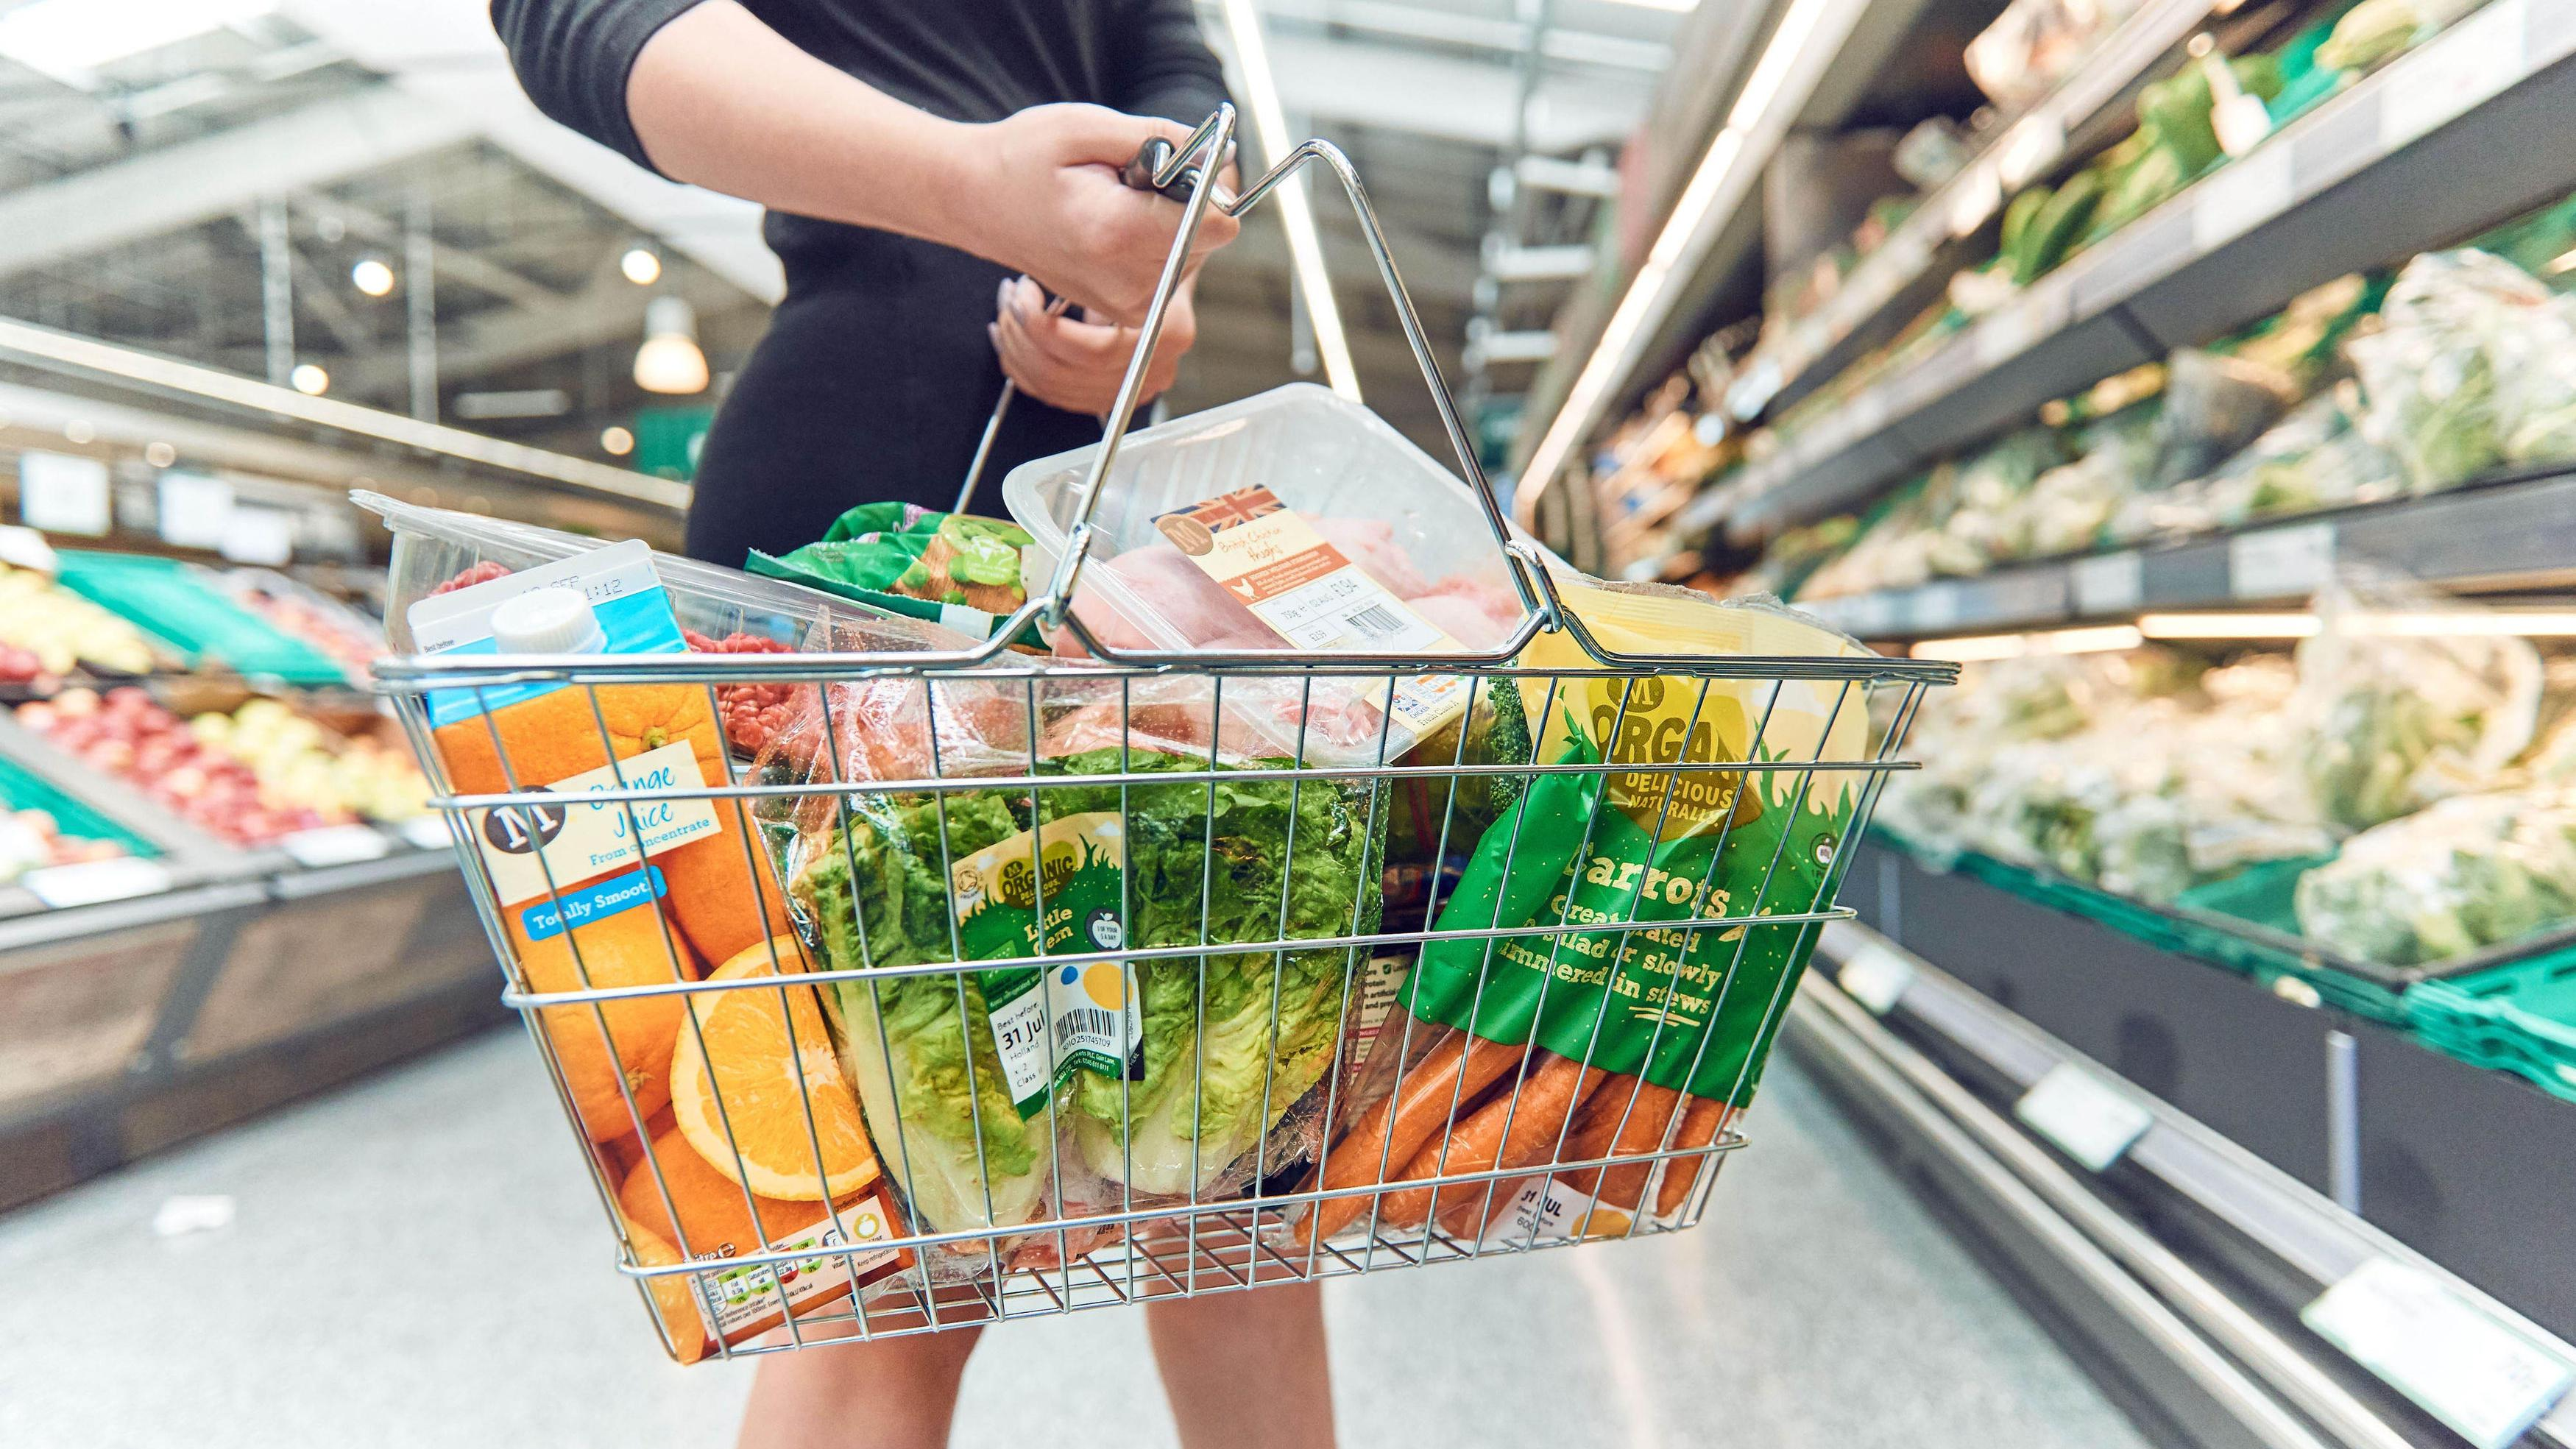 Dynamic pricing comes to the supermarket